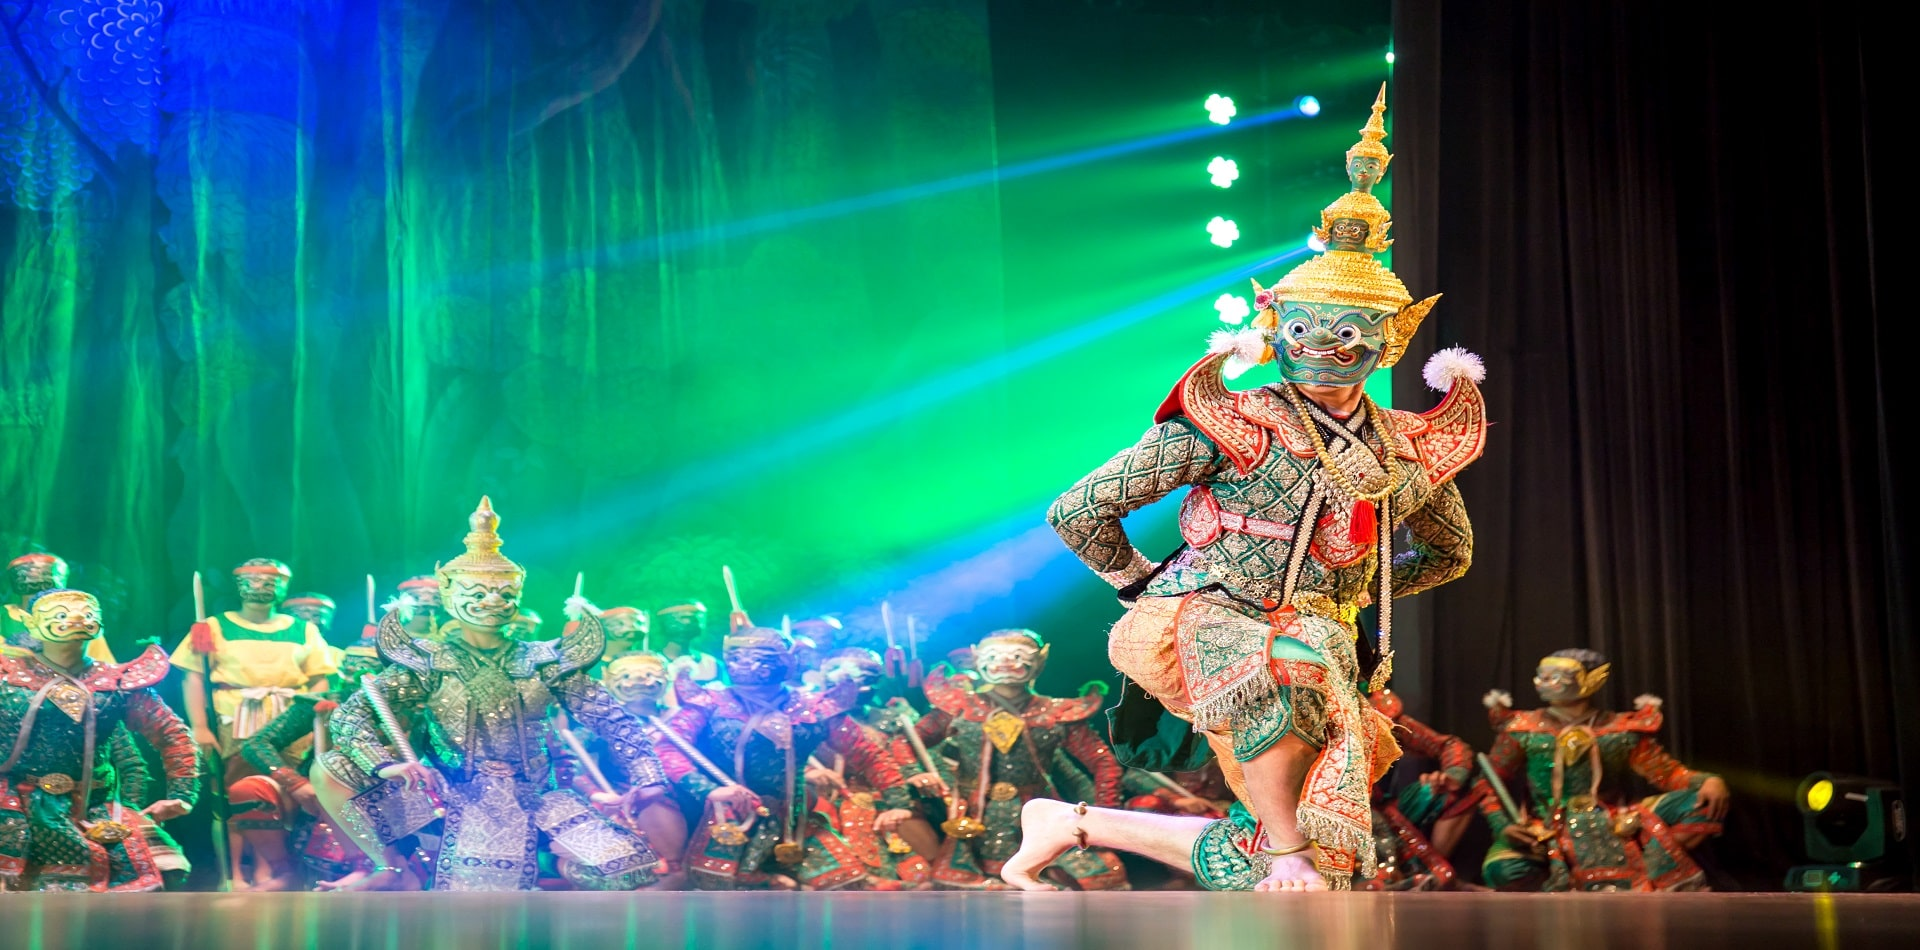 The traditional dance of arts perform on the stage in Thailand.